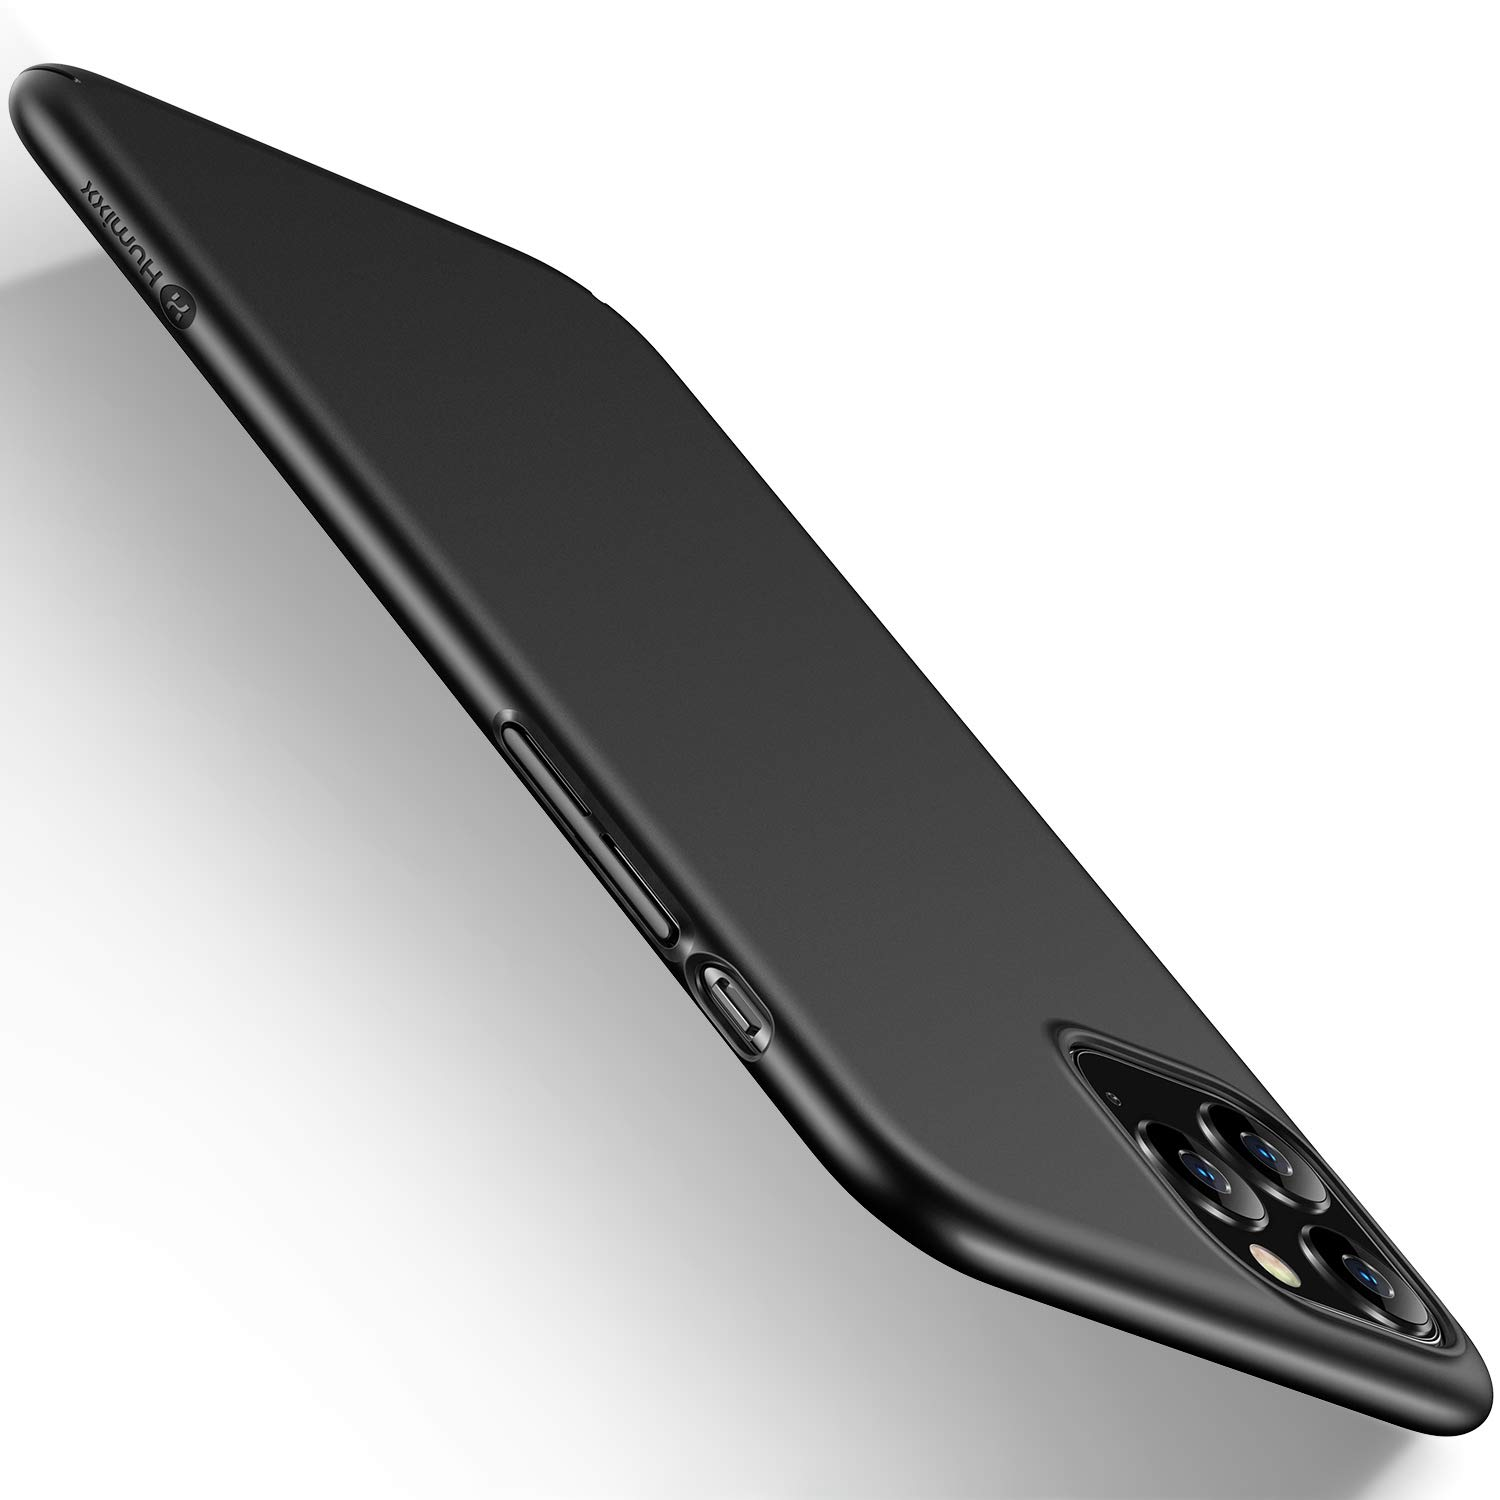 humixx Ultra Thin iPhone 11 Pro Max Case, Slim Hard Plastic PC Fit Full Protective Cover[Scratch Resistant] with Matte Finish Coating Skin Supports Wireless Charging Case-Black